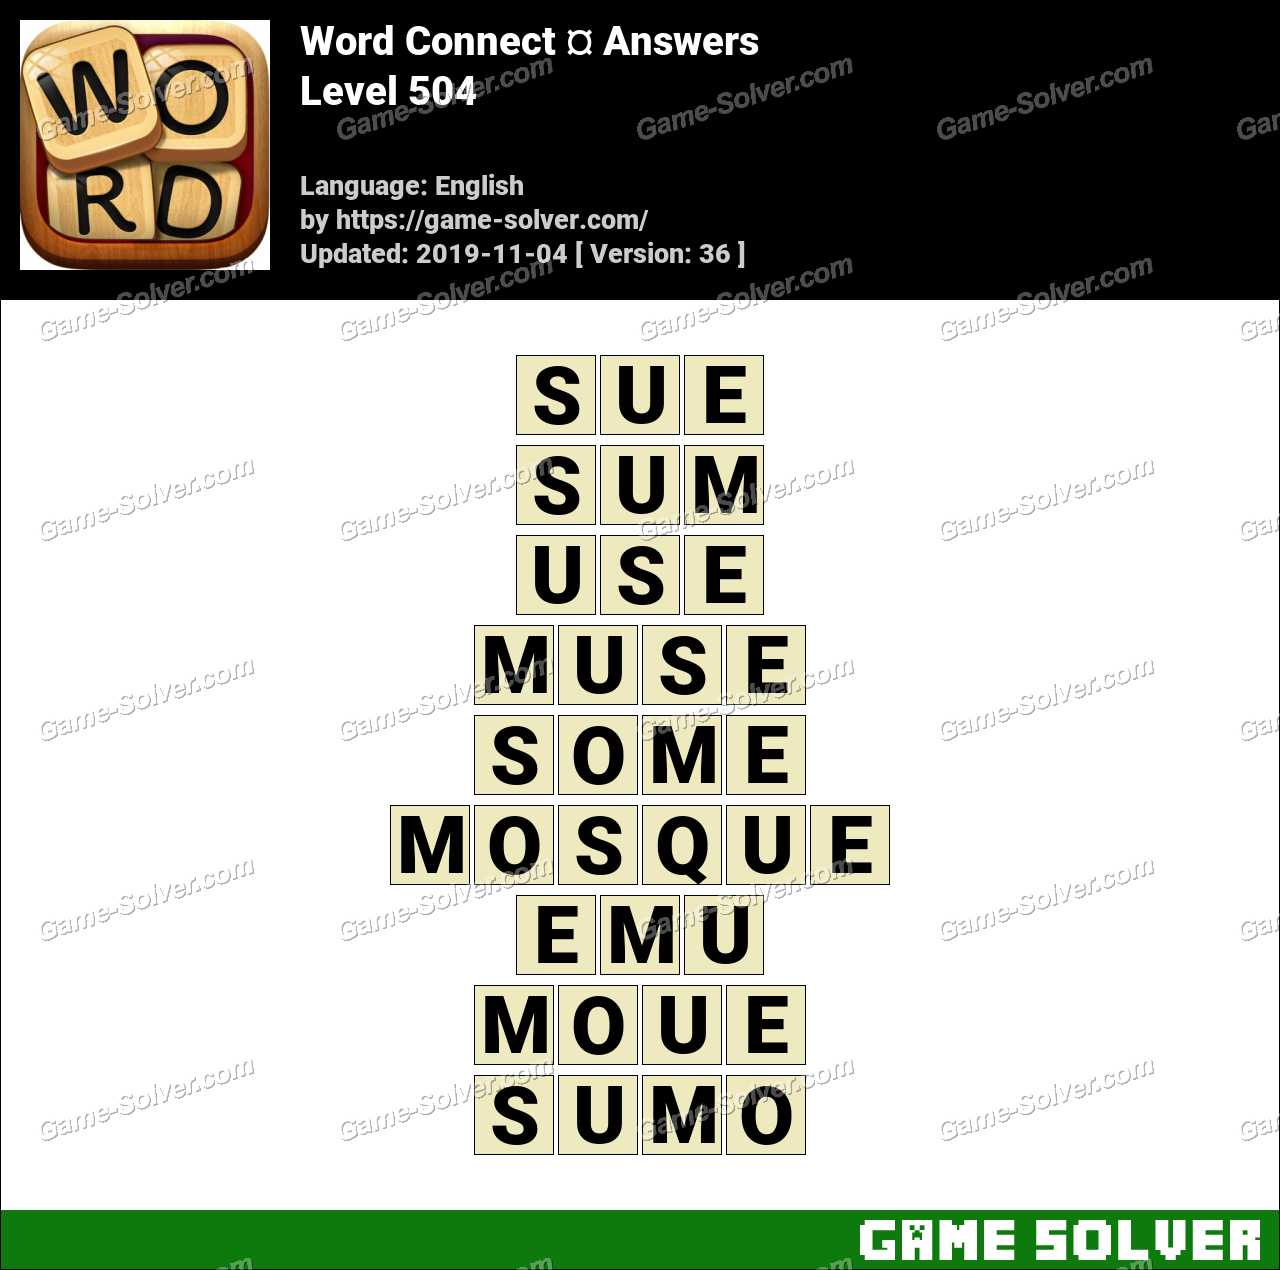 Word Connect Level 504 Answers